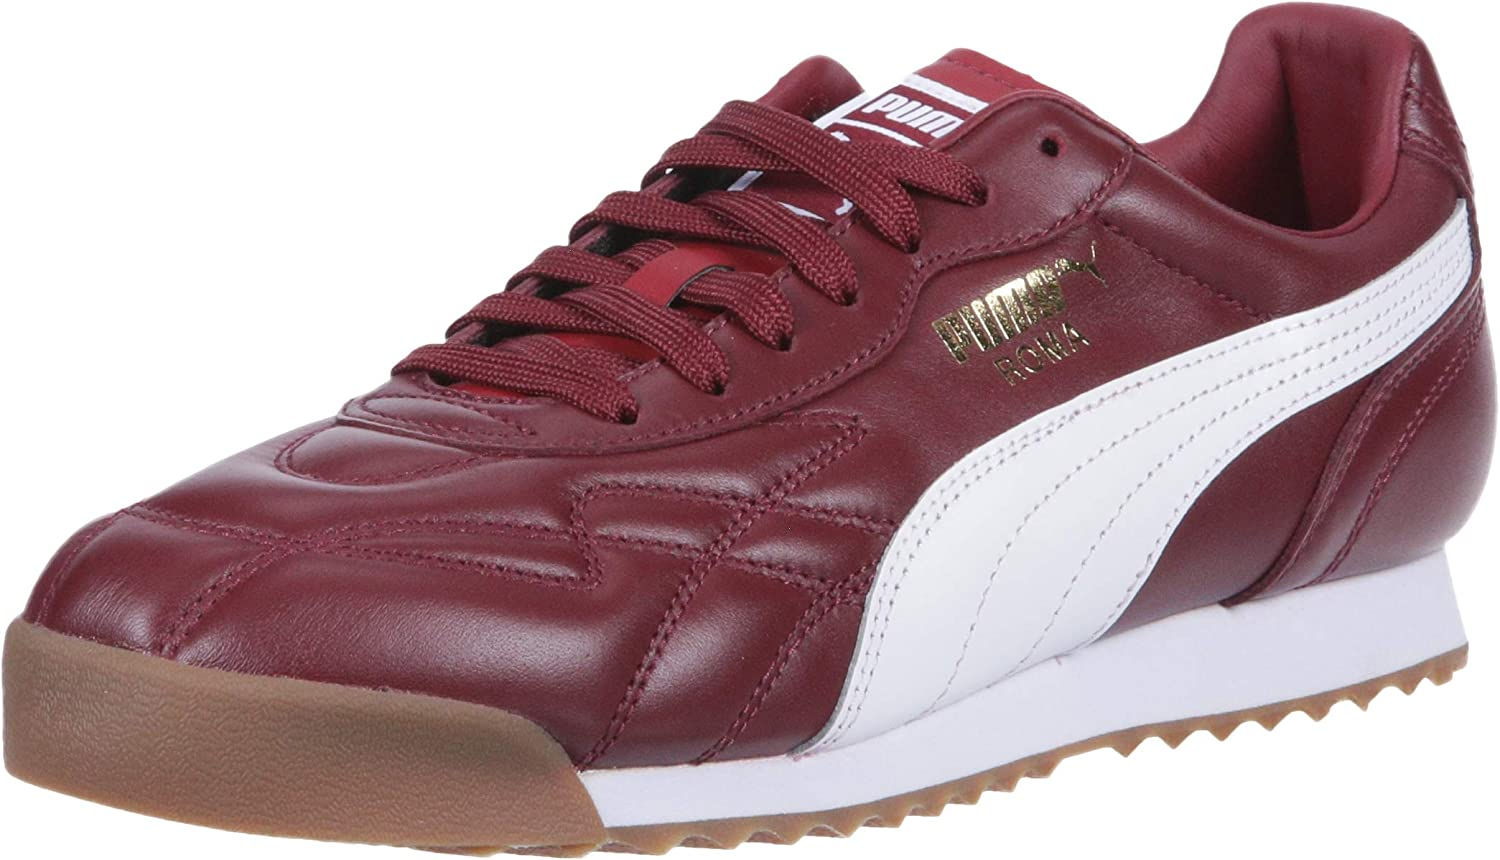 PUMA Special price for a limited time Men's Roma Excellence Sneaker Anniversario